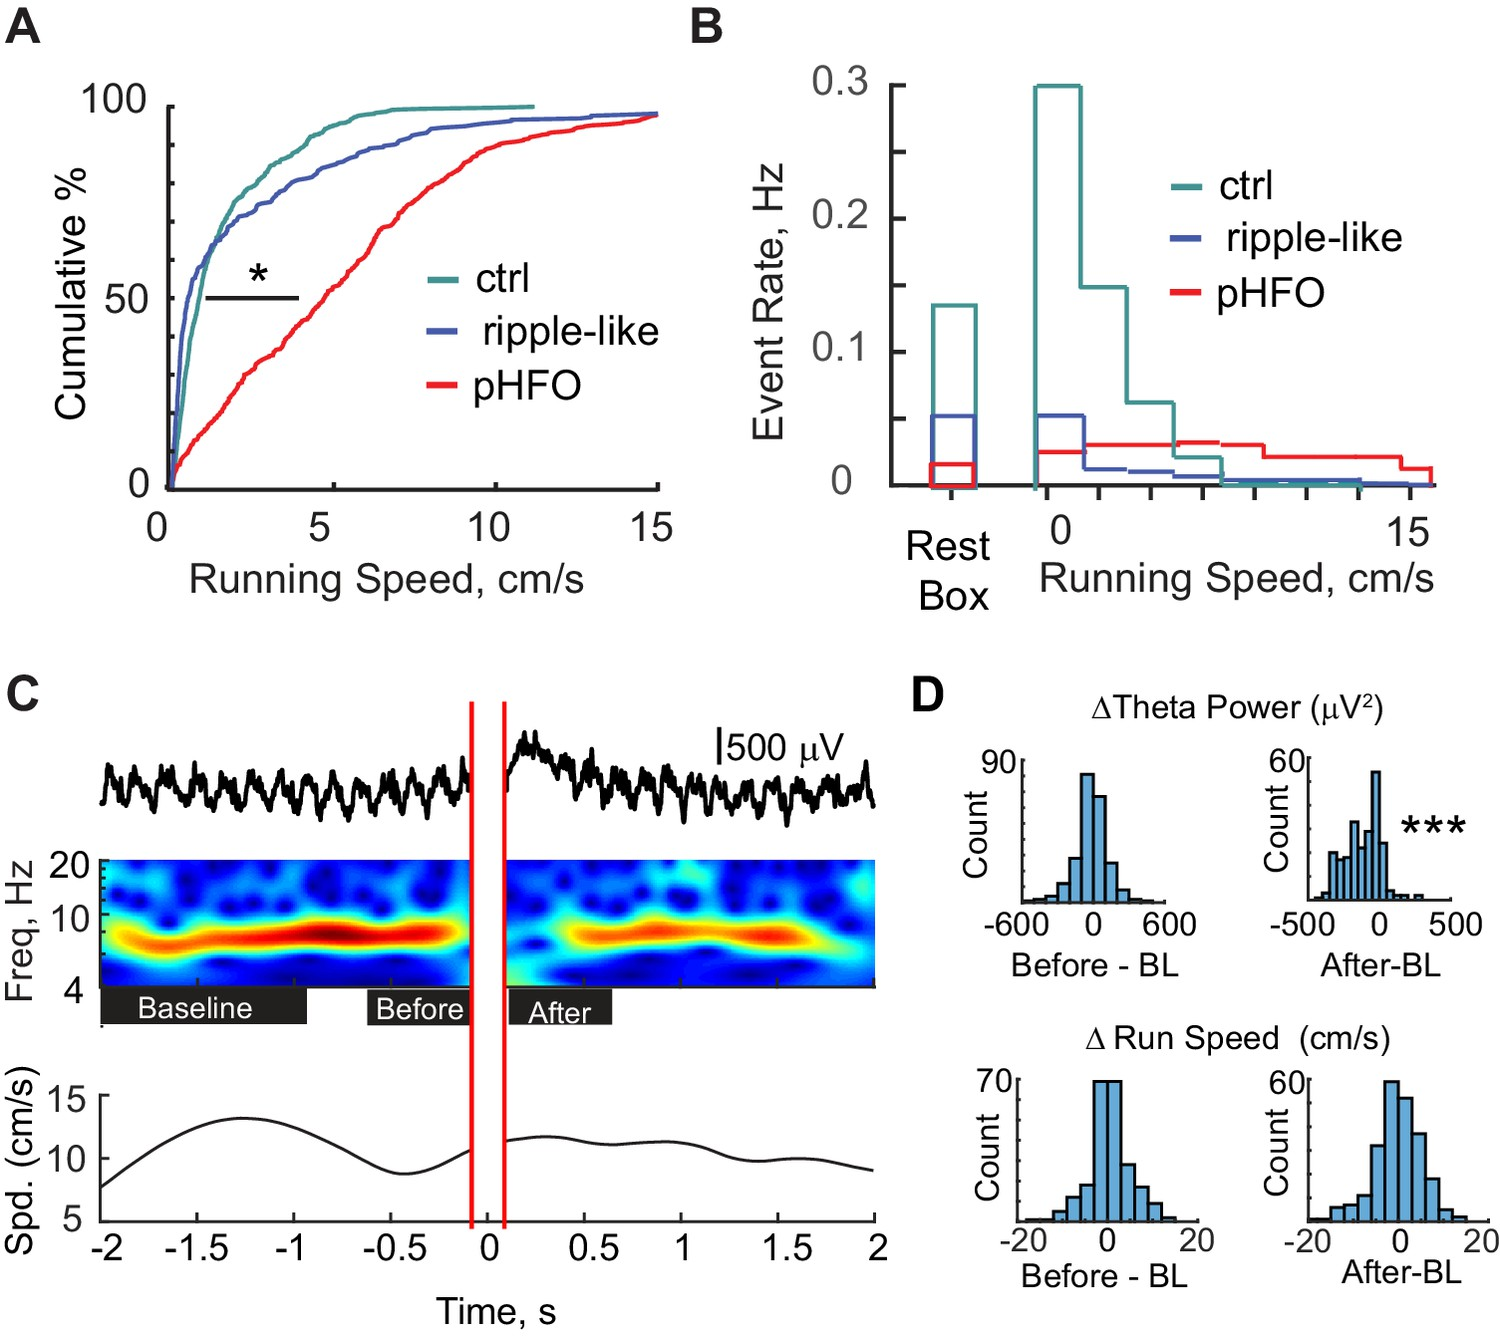 The impact of pathological high-frequency oscillations on